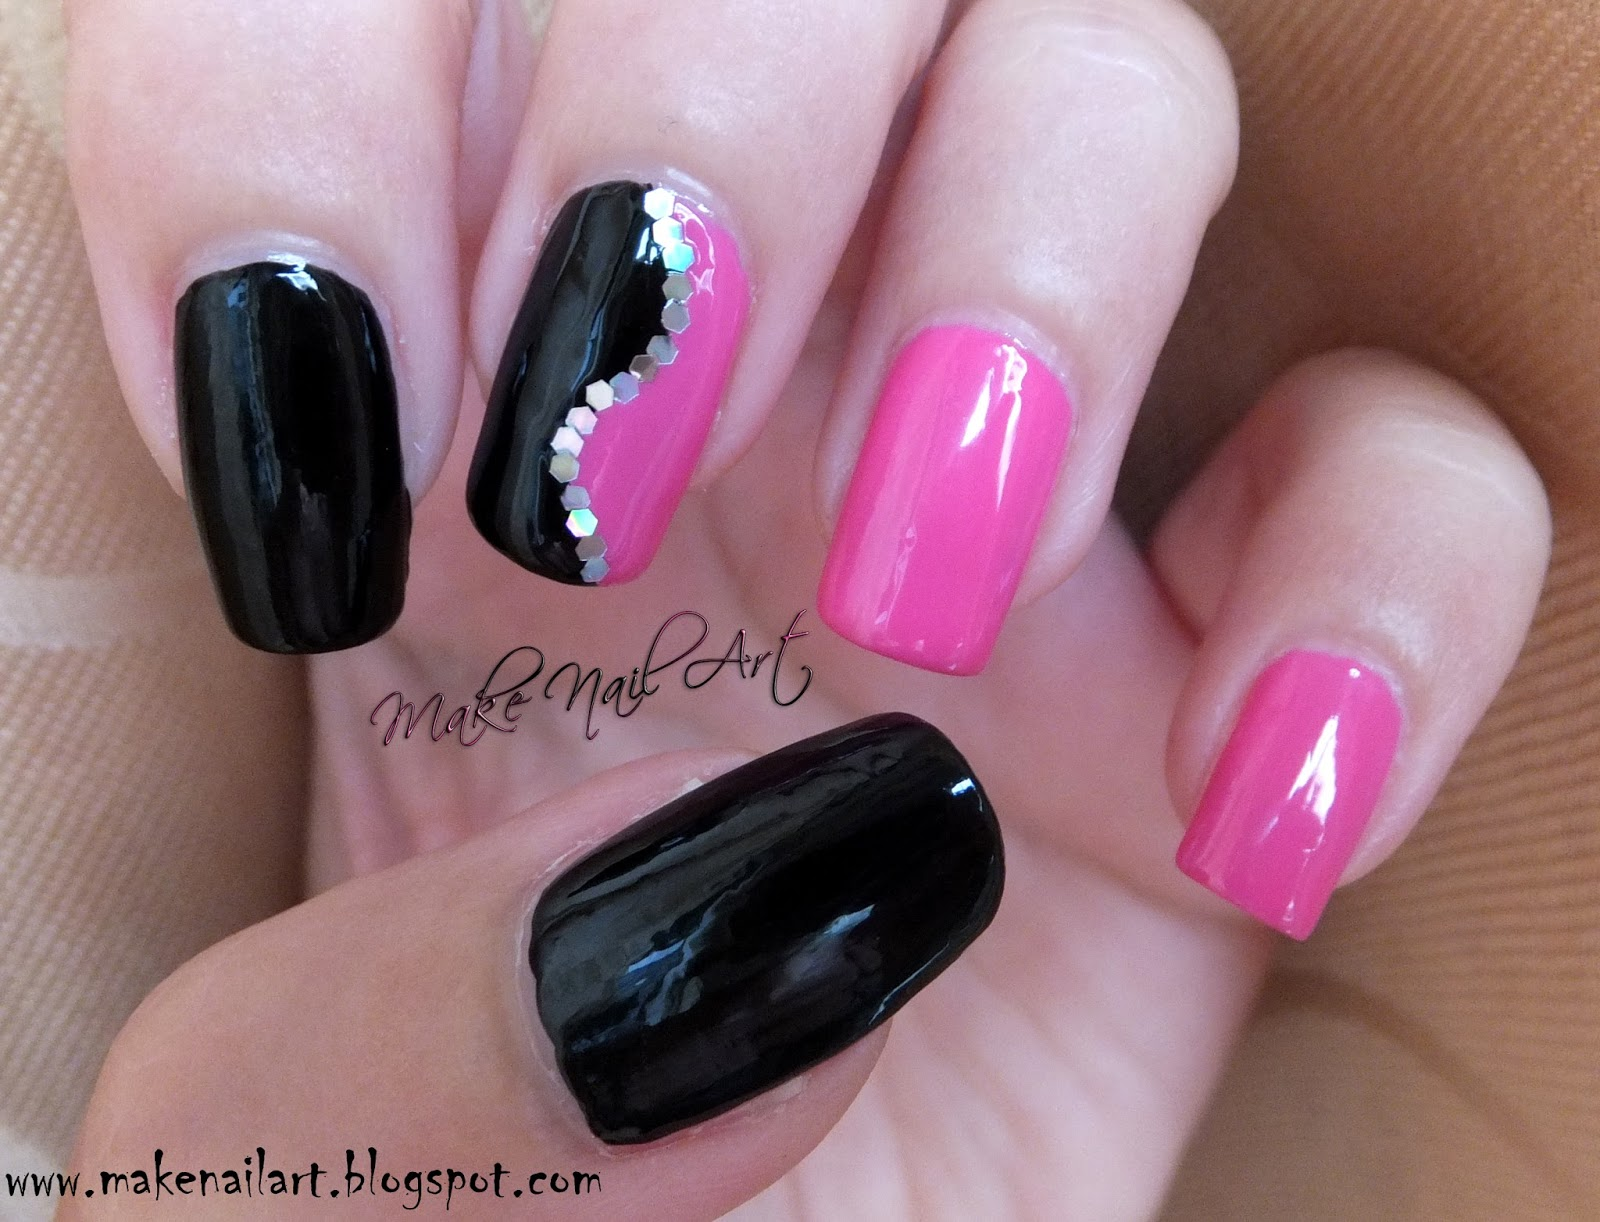 Make Nail Art Easy Black And Pink Nail Design Nail Art Tutorial